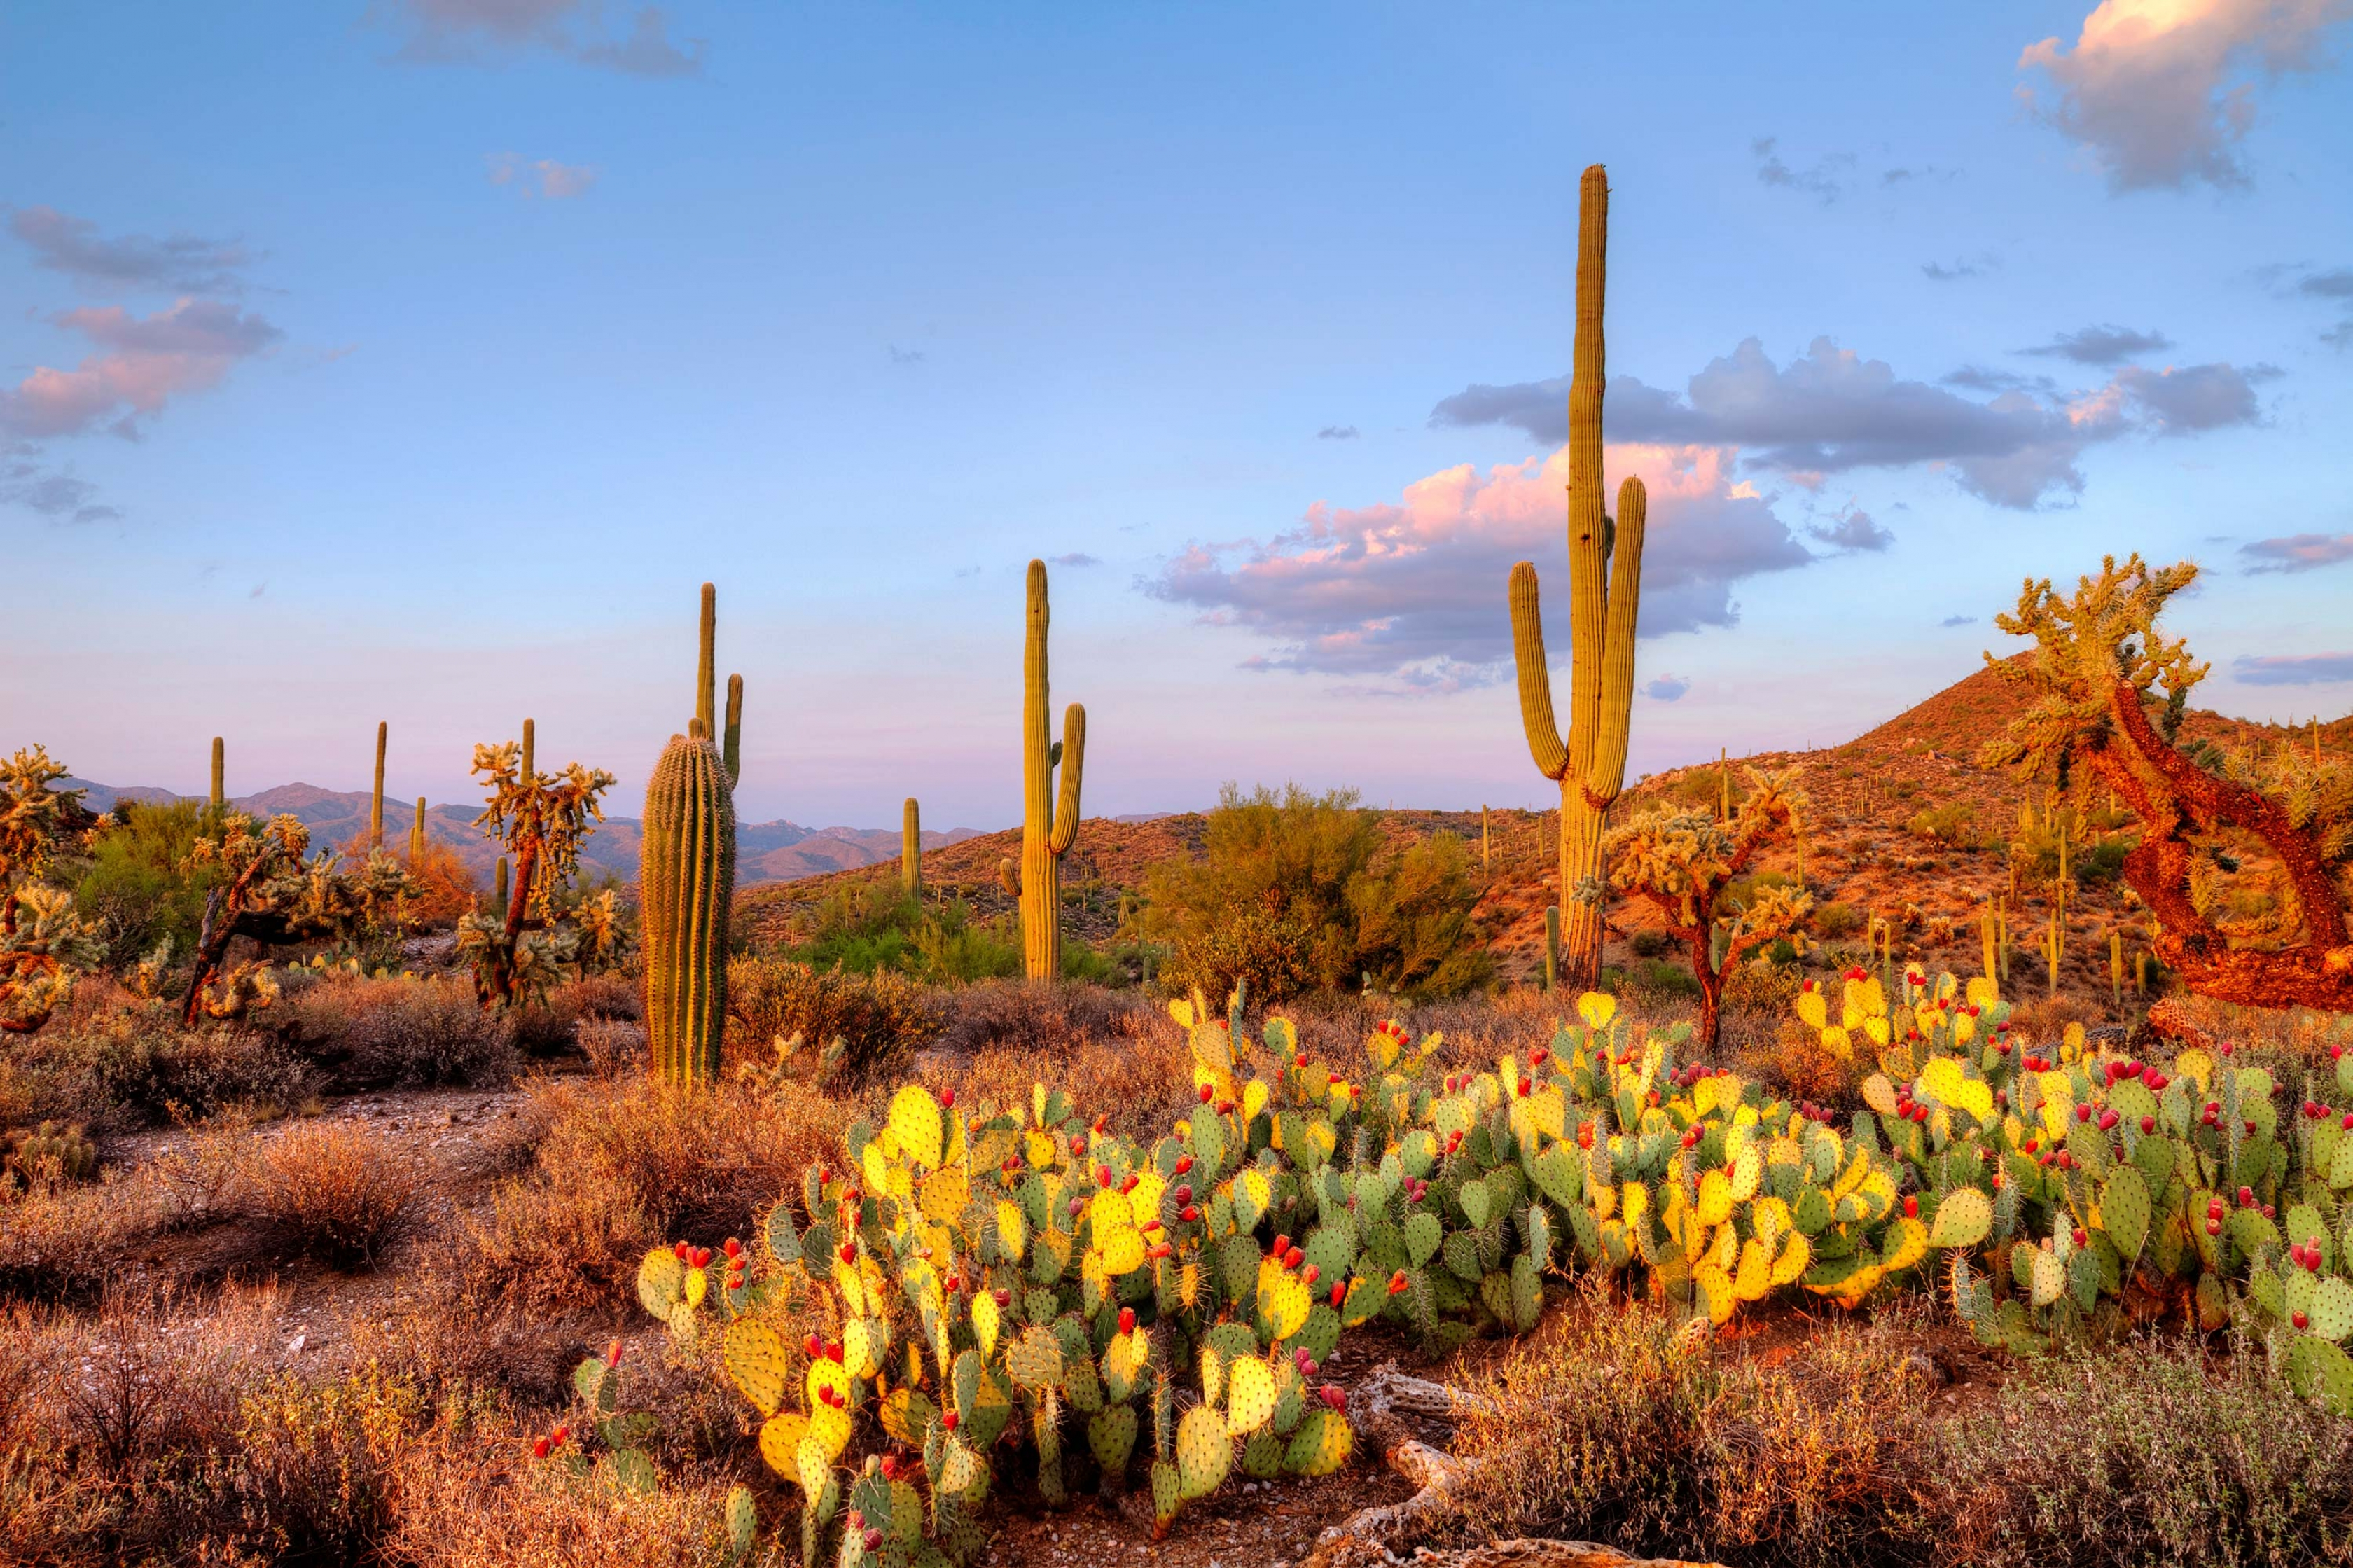 A grove of cactus, a regular site at Saguaro National Park.